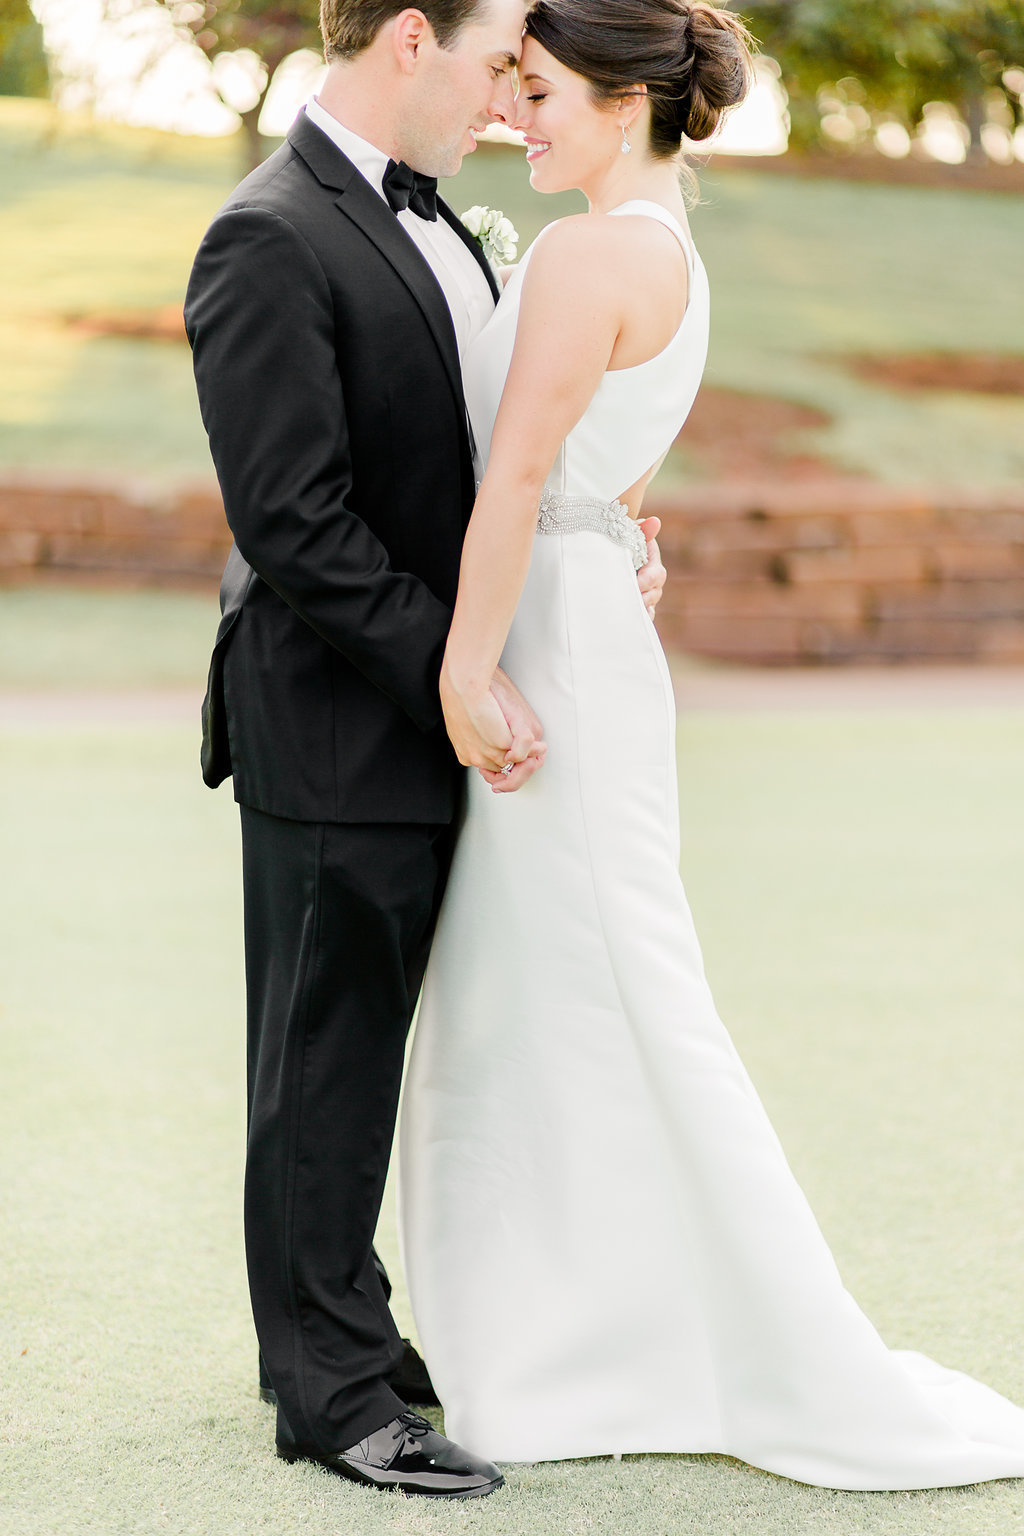 Gallardia-Oklahoma-City-Oklahoma-Wedding-Photographer-Holly-Felts-Photography-Photos-322